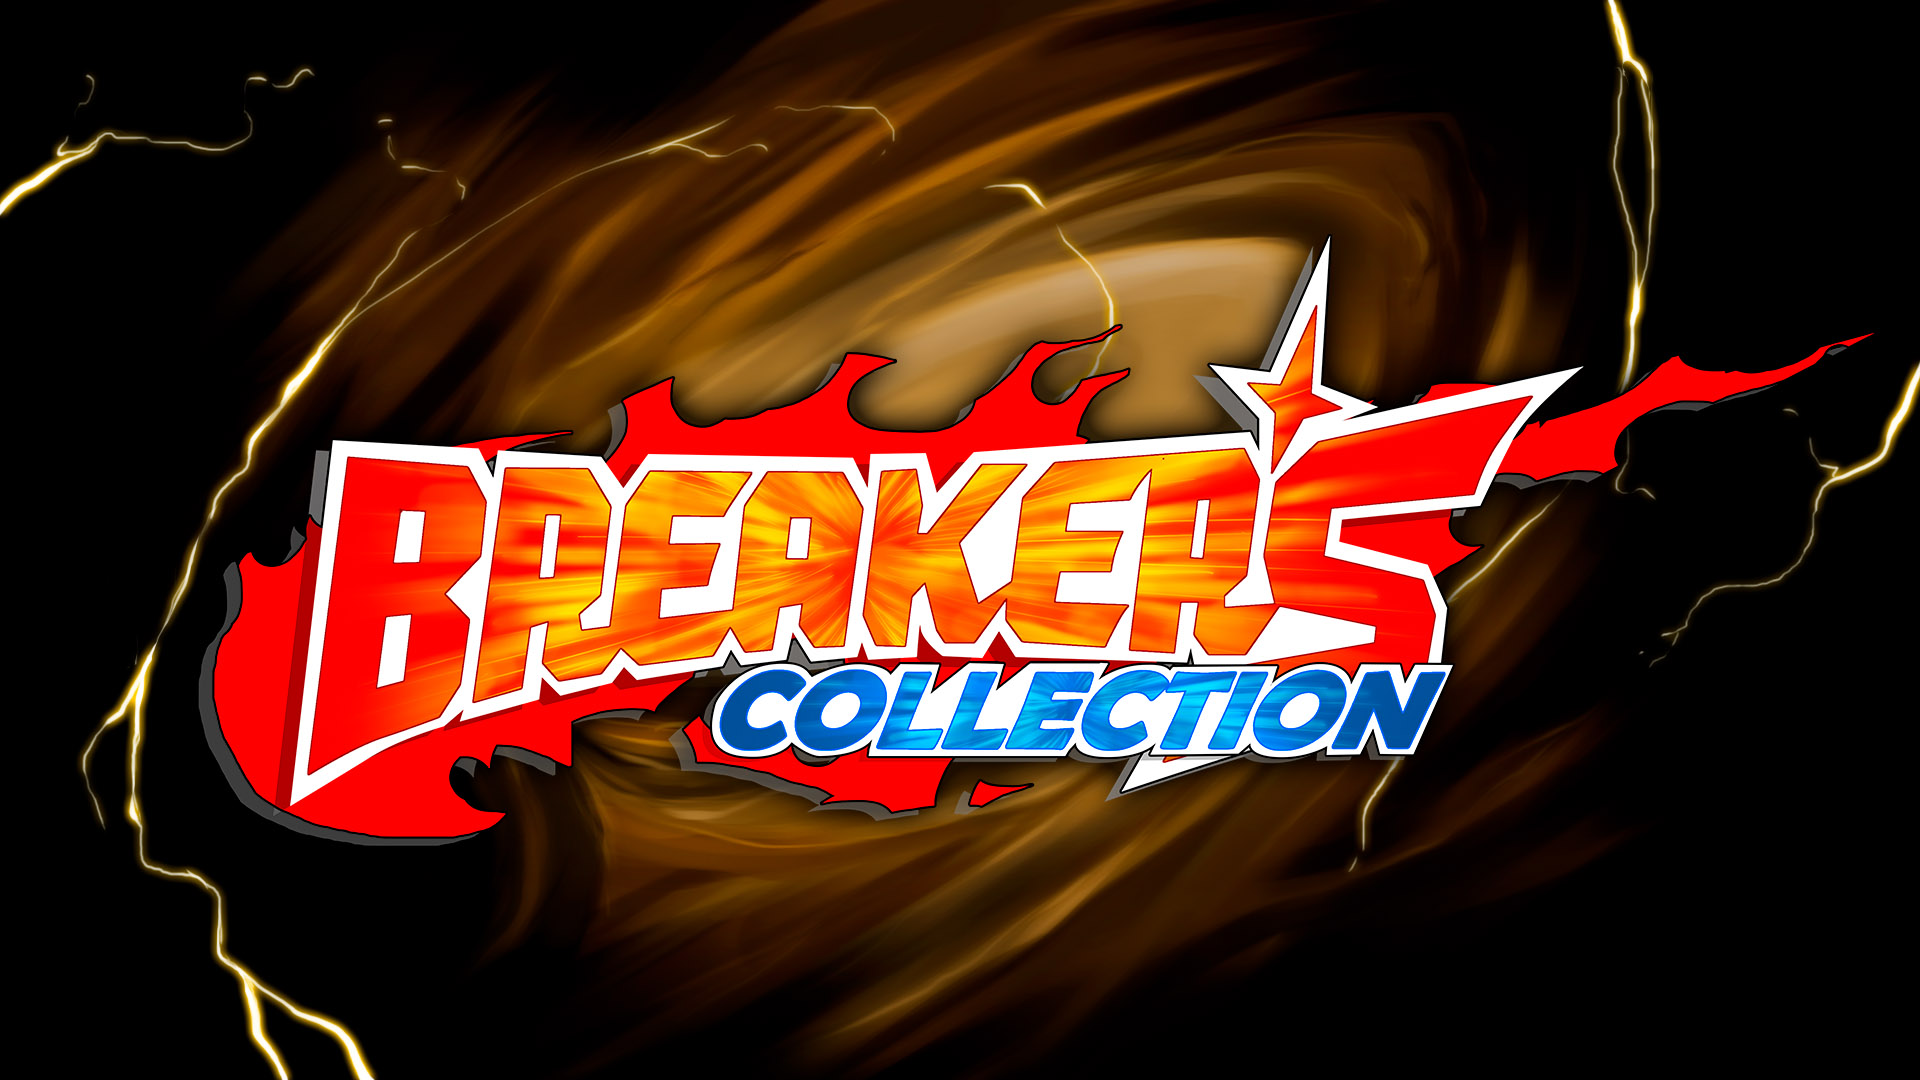 Breakers Collection